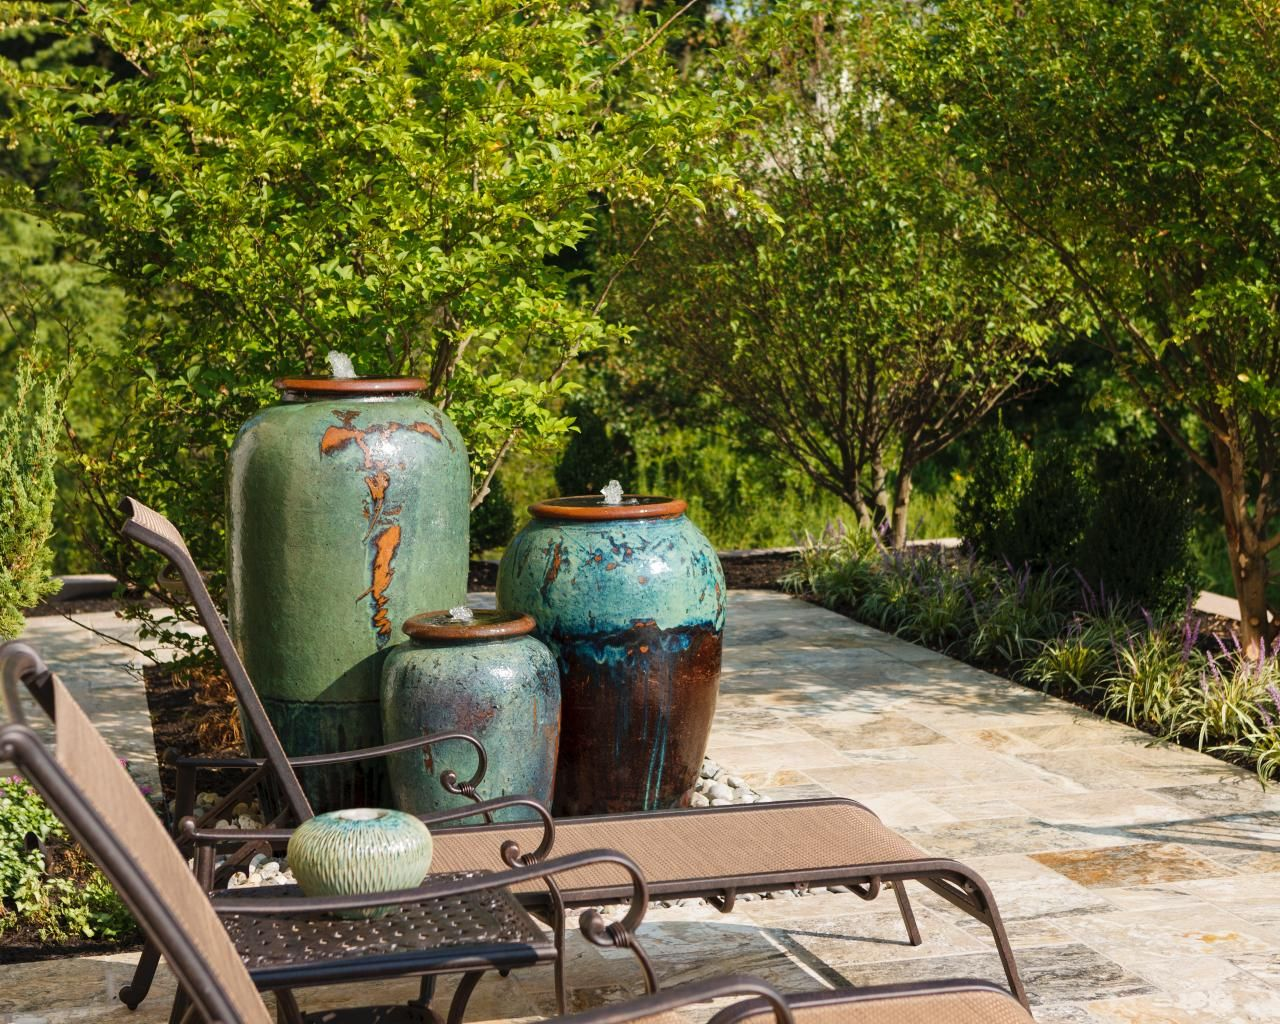 Wonderful A Trio Of Water Urns Are An Eye Catching Focal Point On This Patio.